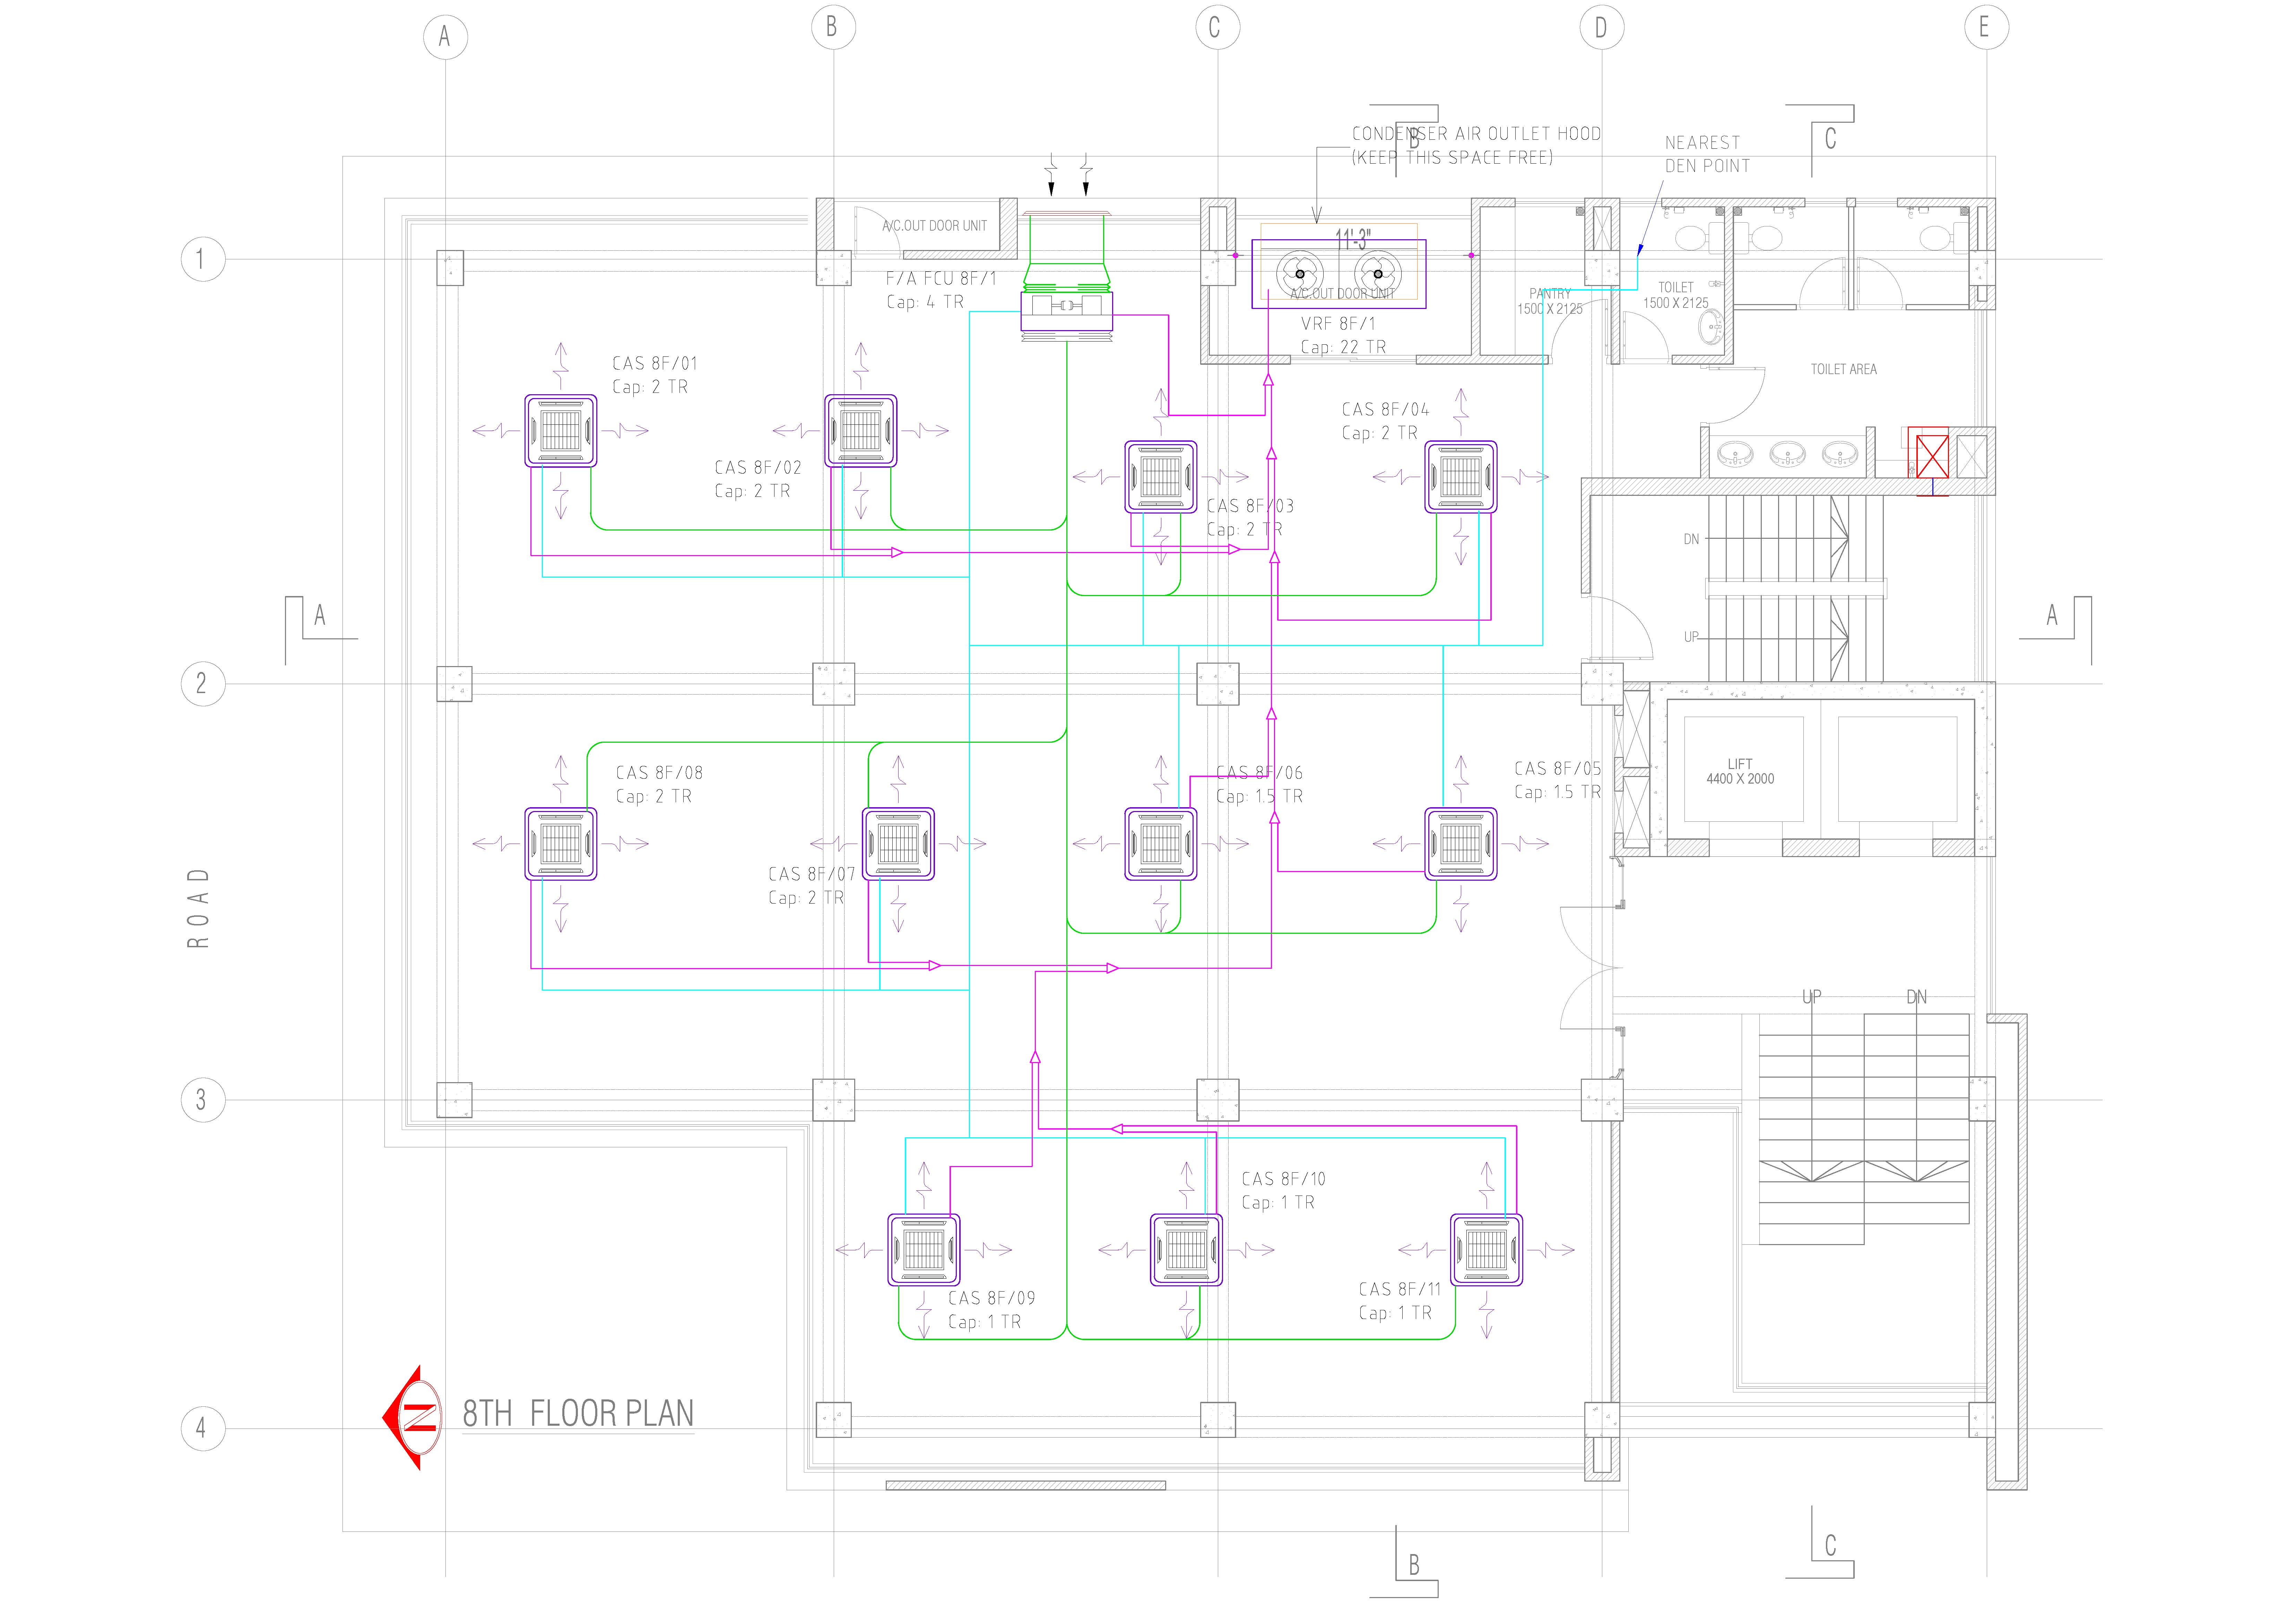 autocad hvac drawings pictures draw any hvac system layout drawing for autocad 2d by mahabubur8407  draw any hvac system layout drawing for